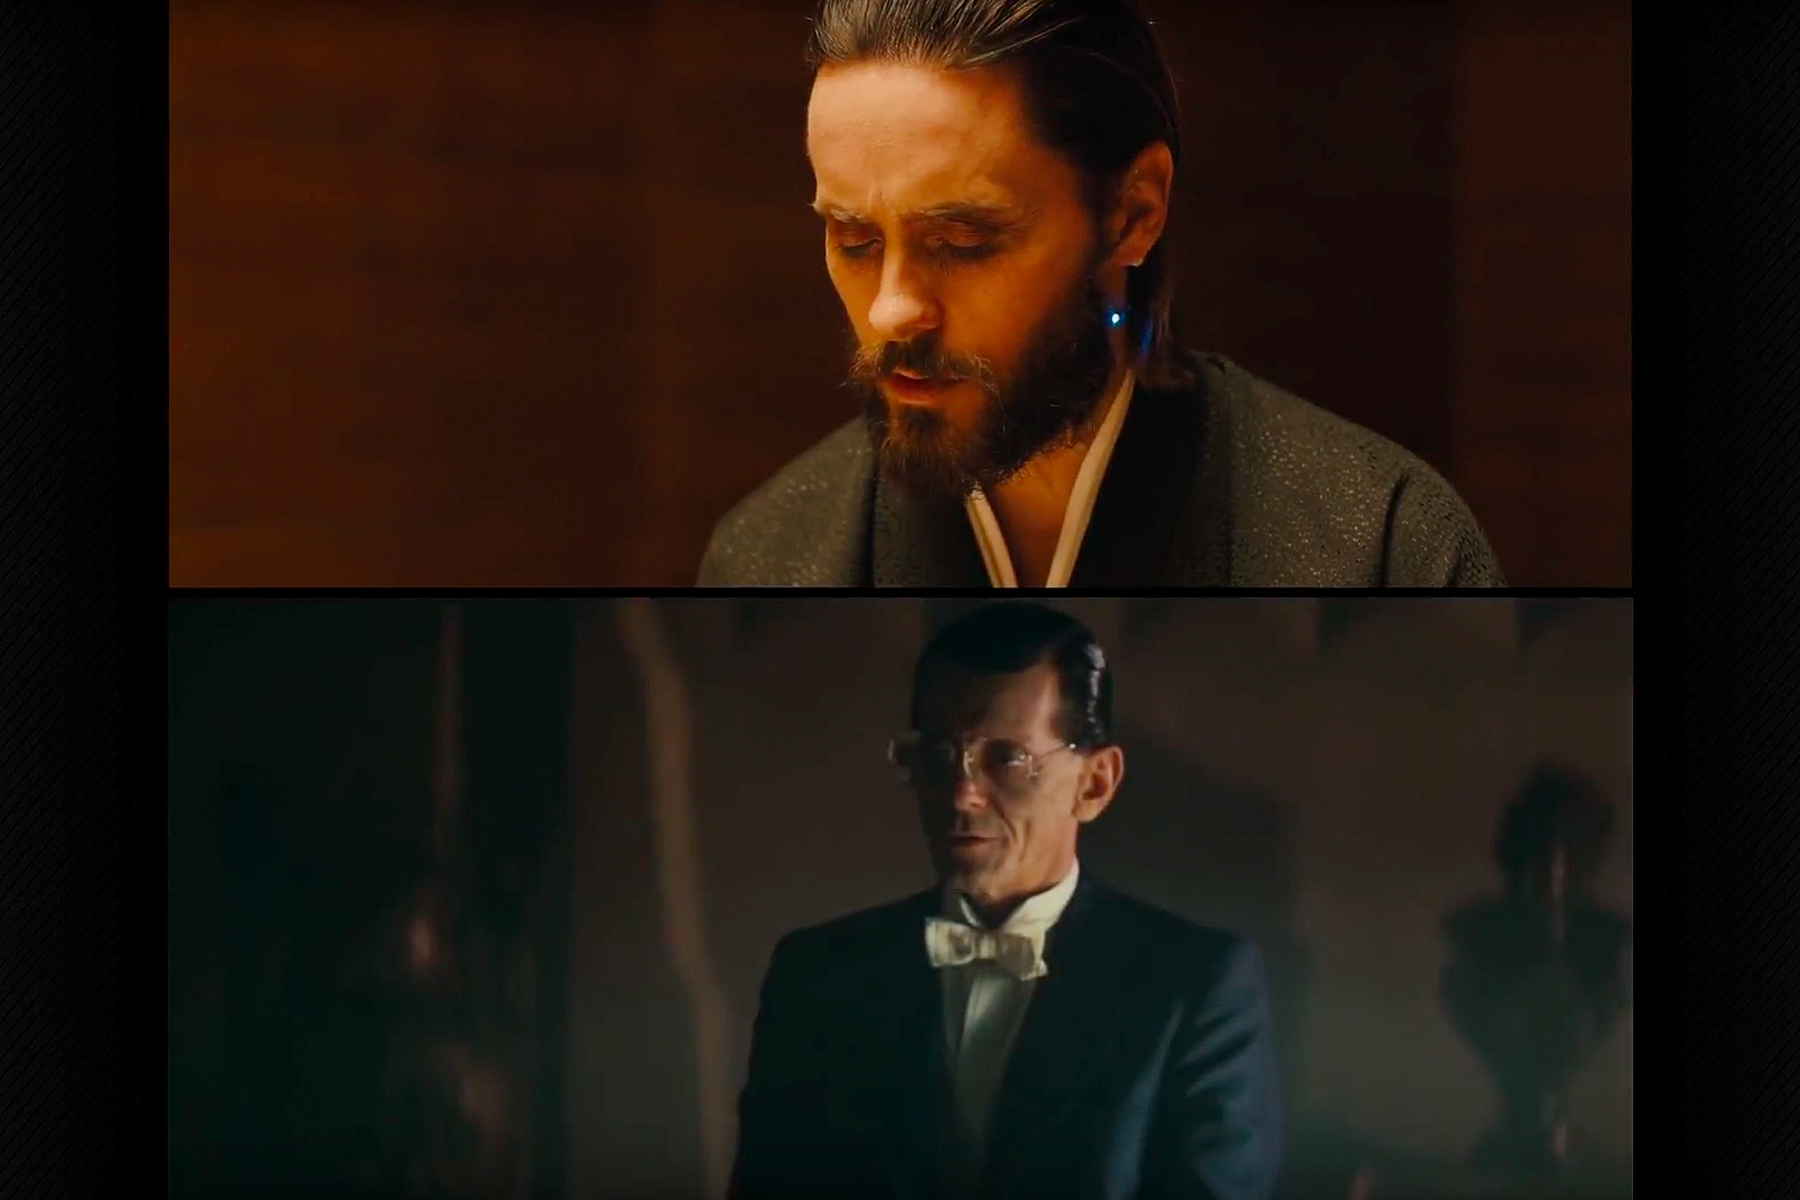 top blade runner 2049 wallace lit from the top bottom original tyrell with bounced light reflected off water